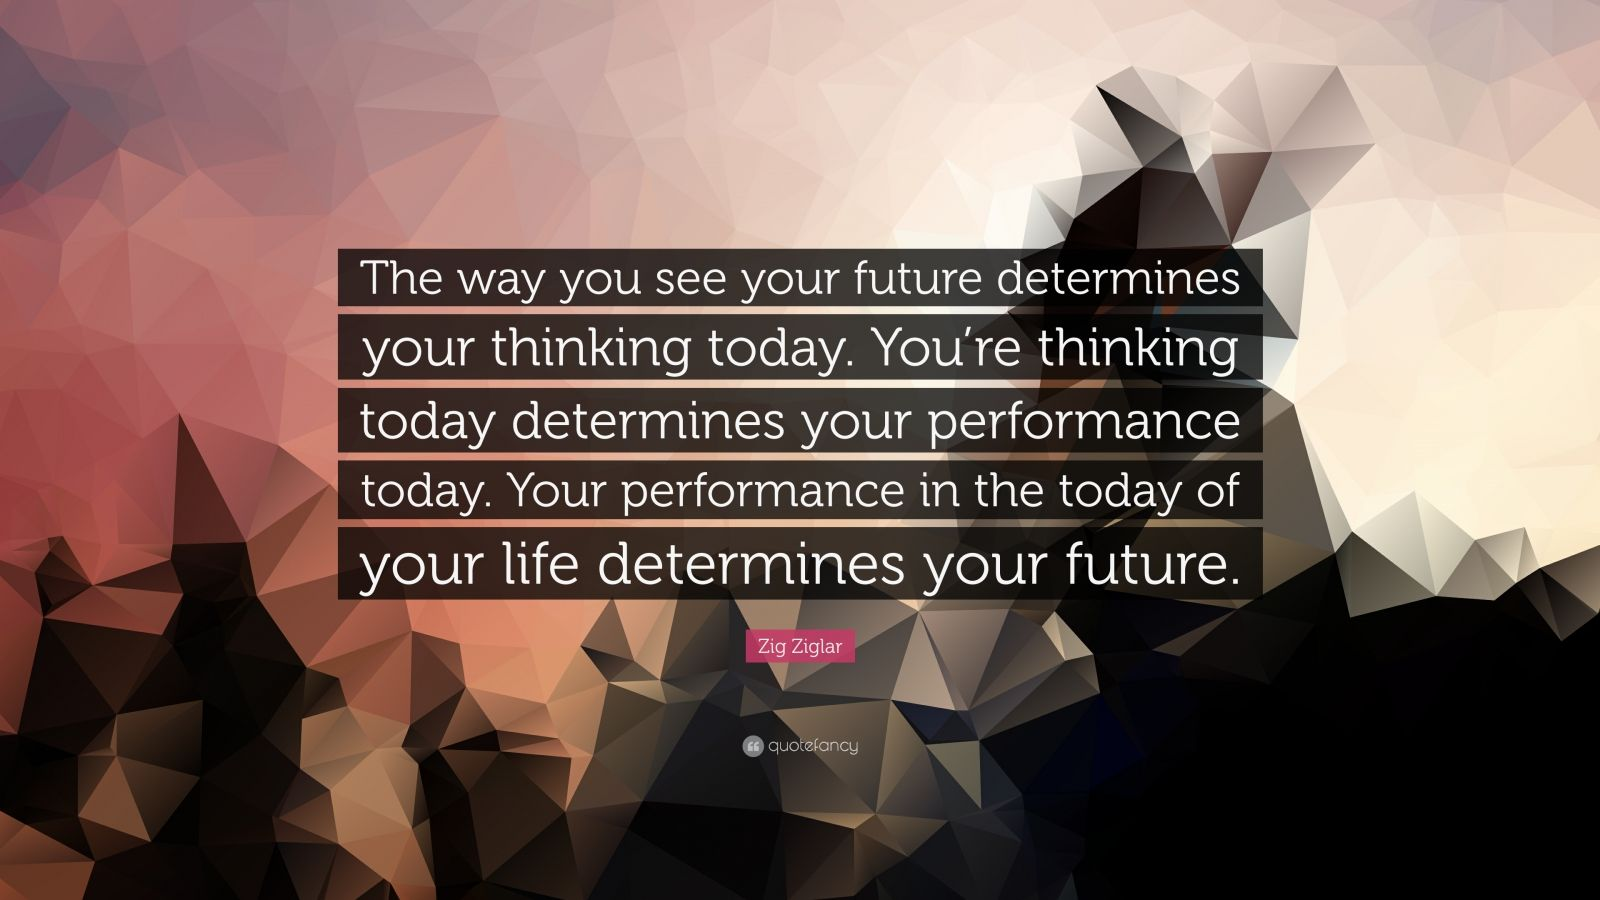 """Zig Ziglar Quote: """"The way you see your future determines your thinking today. You're thinking today determines your performance today. Your performance in the today of your life determines your future."""""""